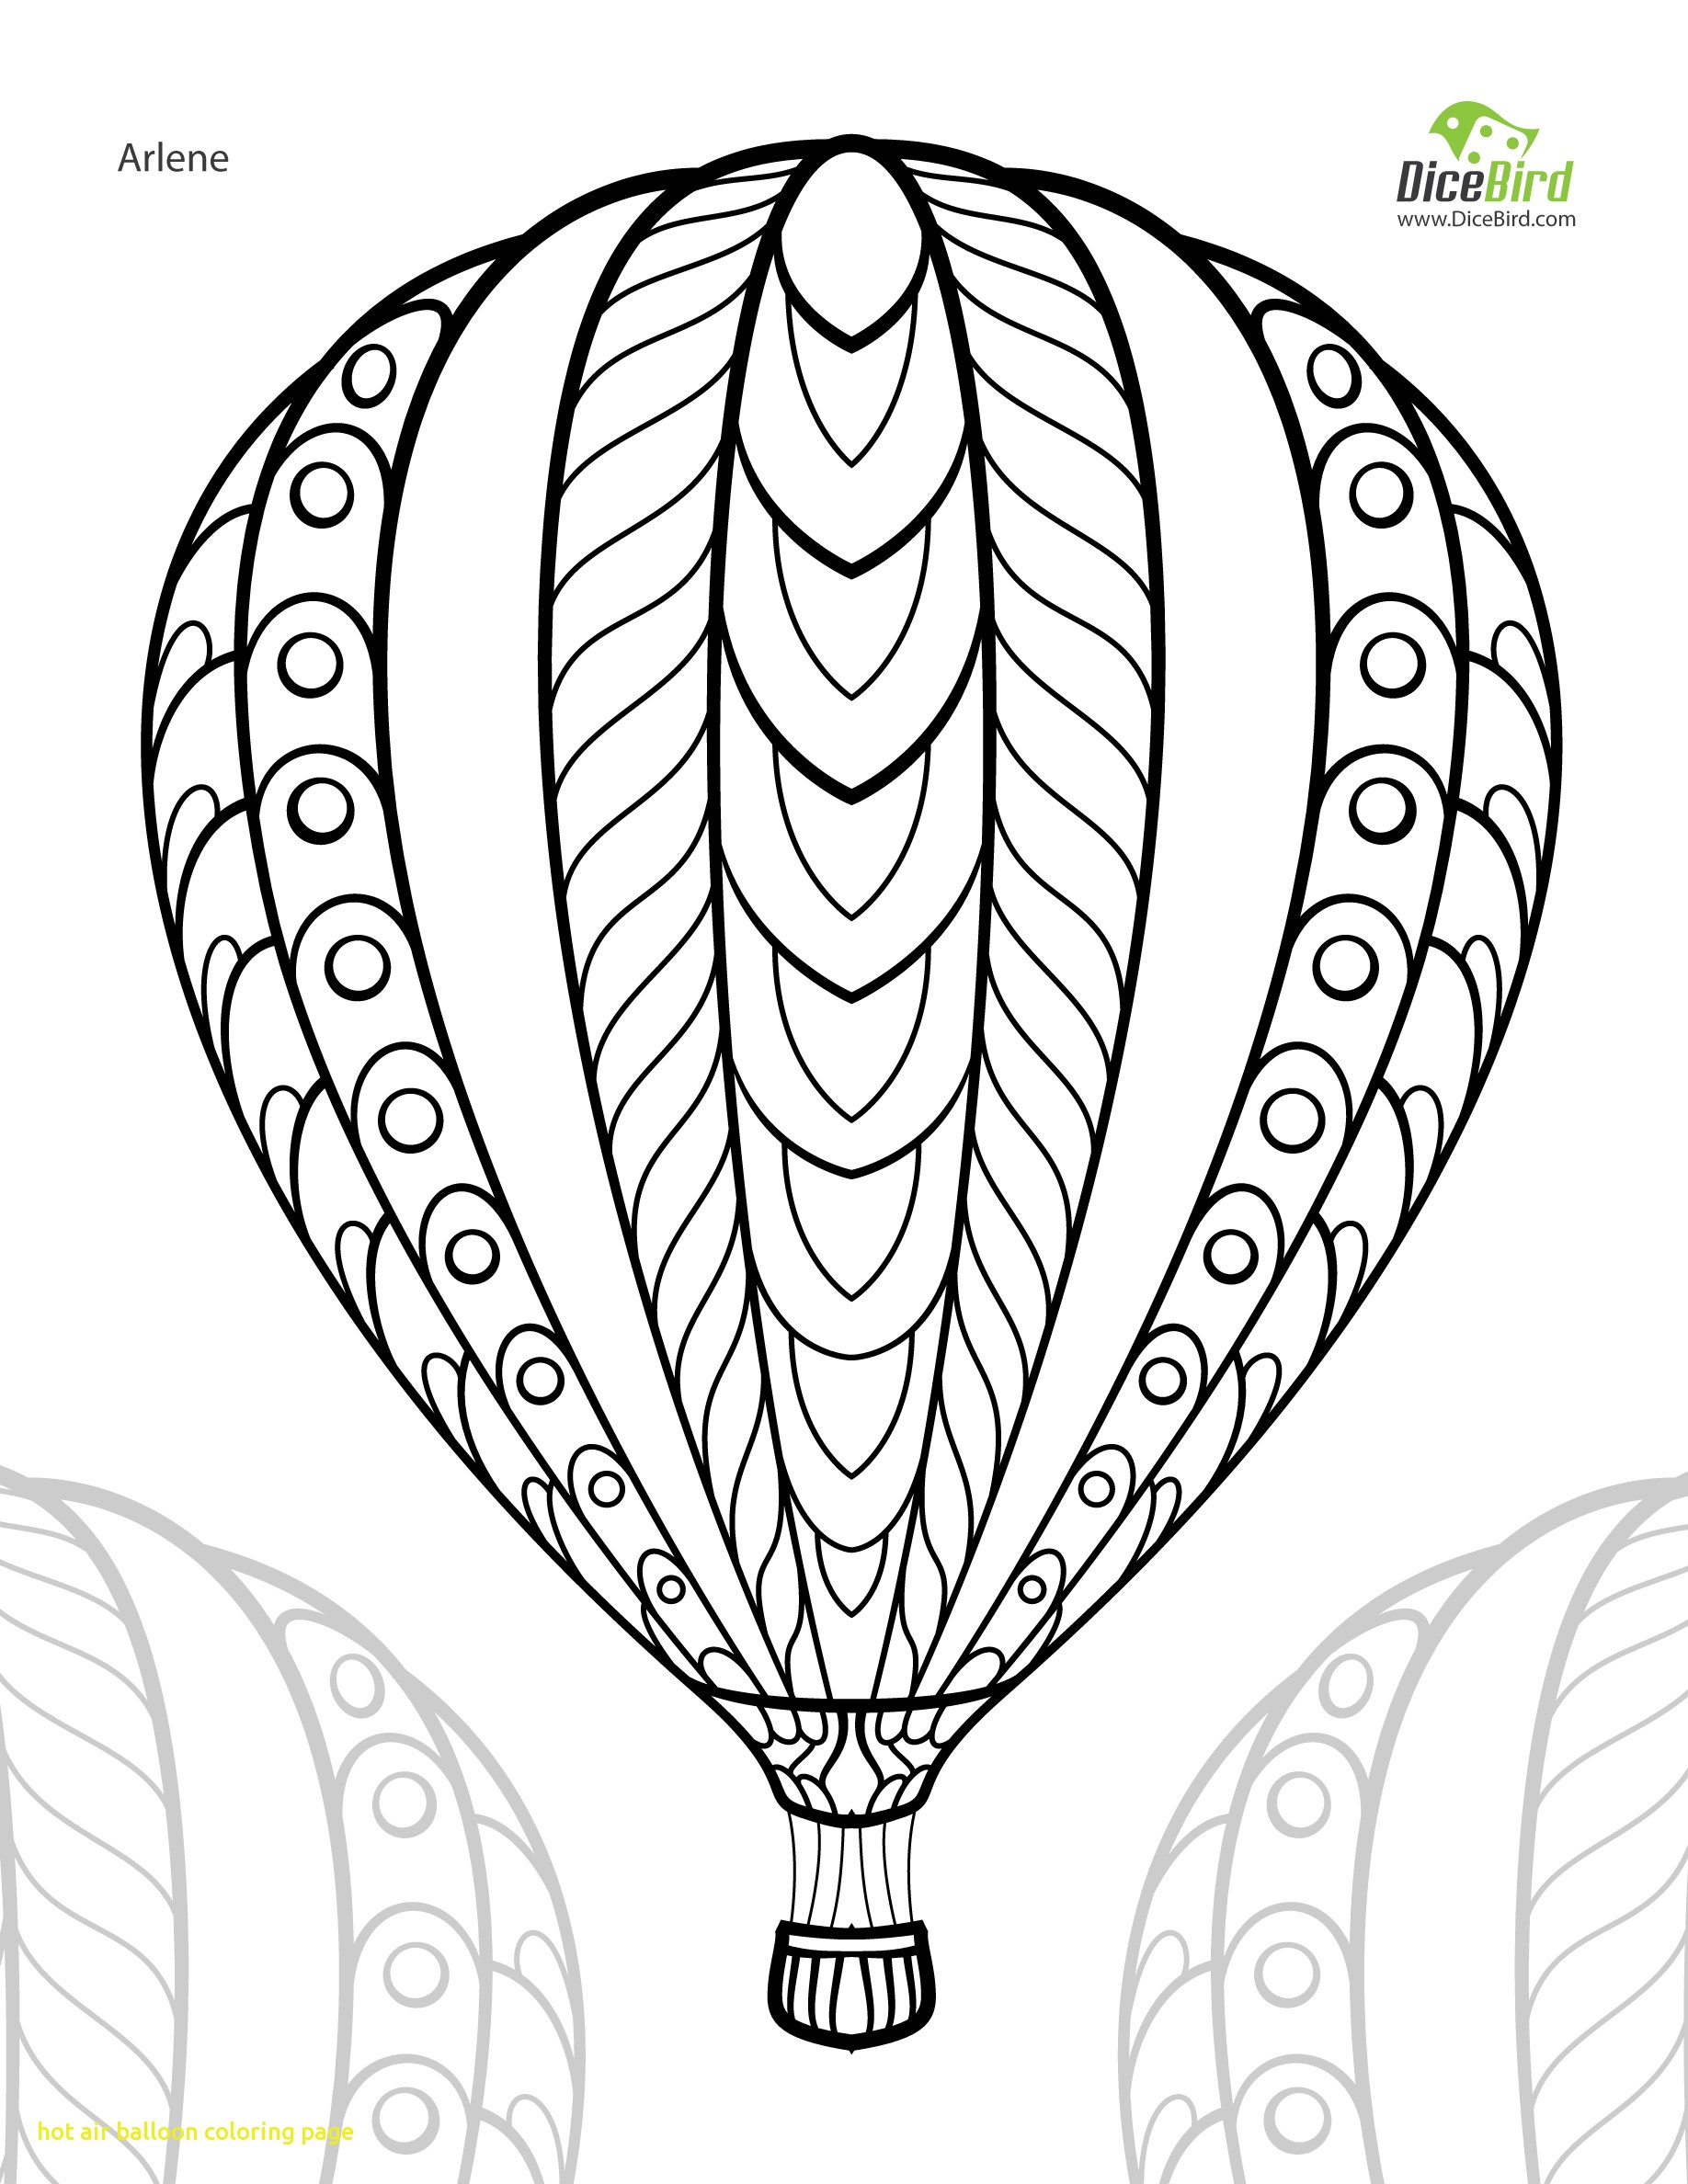 1836x2376 Hot Air Balloon Coloring Page With Cool Hot Air Balloon Coloring